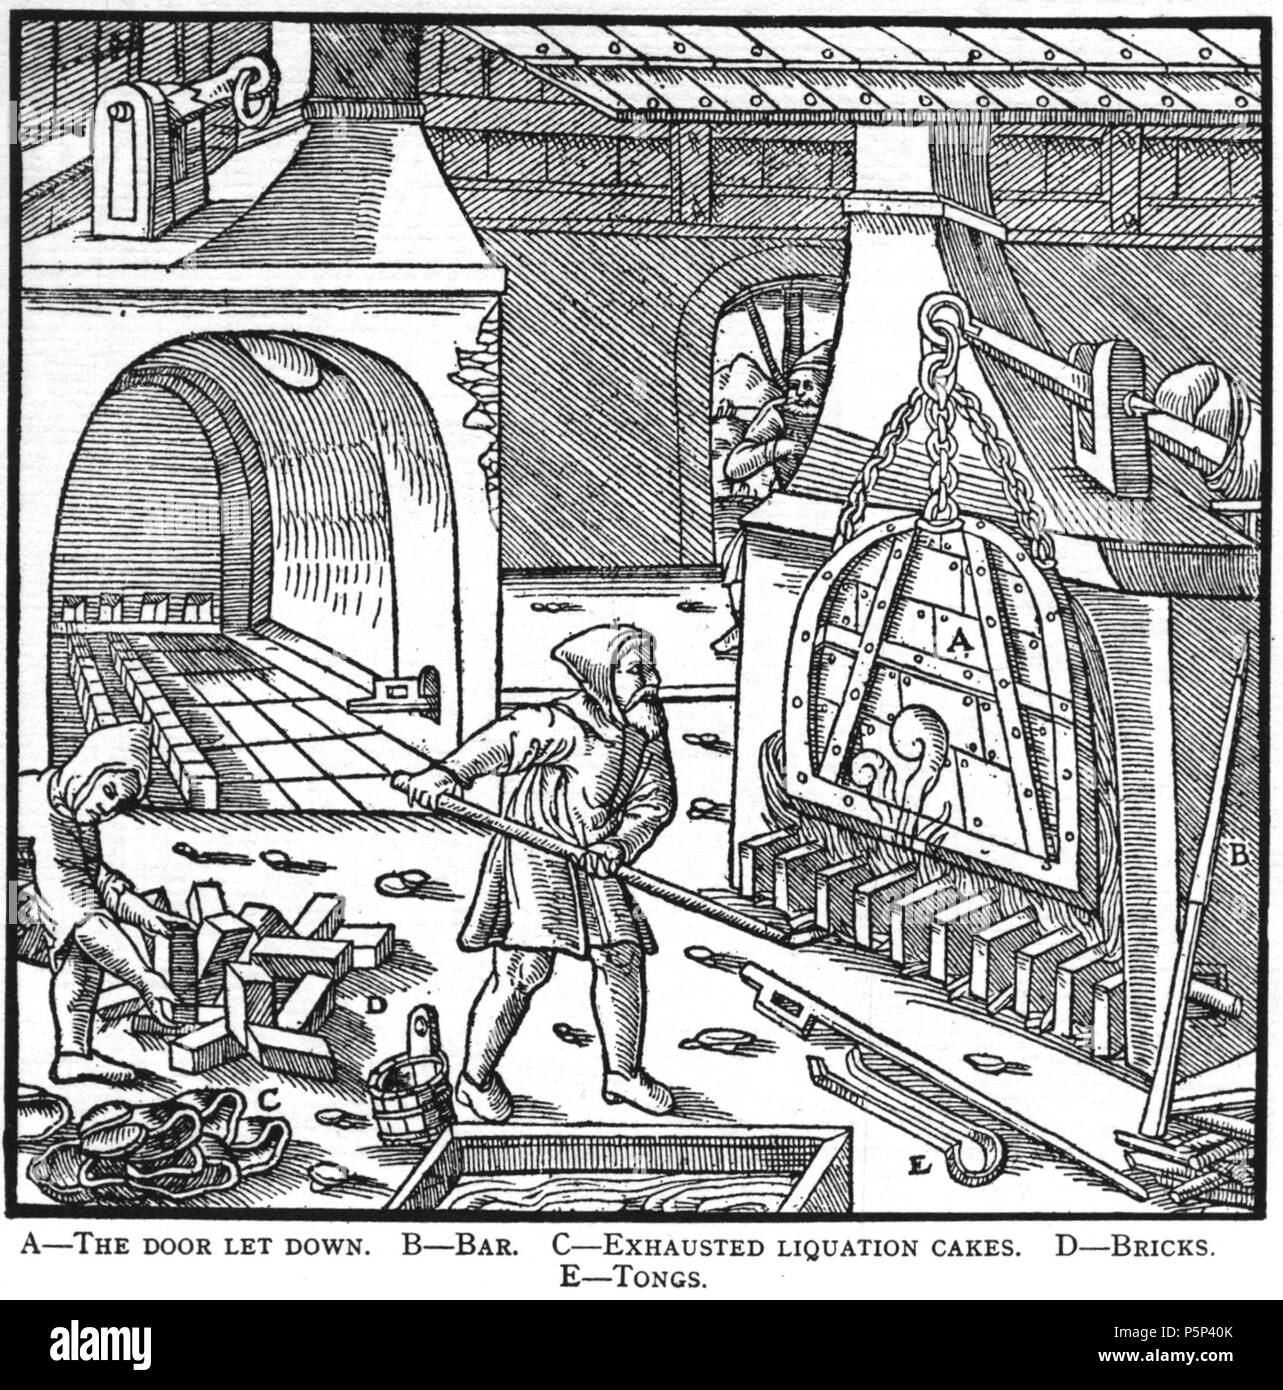 N/A. Woodcut illustration from De re metallica by Georgius Agricola. This is a 300dpi scan from the 1950 Dover edition of the 1913 Hoover translation of the 1556 reference. The Dover edition has slightly smaller size prints than the Hoover (which is a rare book). The woodcuts were recreated for the 1913 printing. Filenames (except for the title page) indicate the chapter (2, 3, 5, etc.) followed by the sequential number of the illustration. 2 May 2005, 06:55:48. TCO (talk) 222 Book11-12 - Stock Image